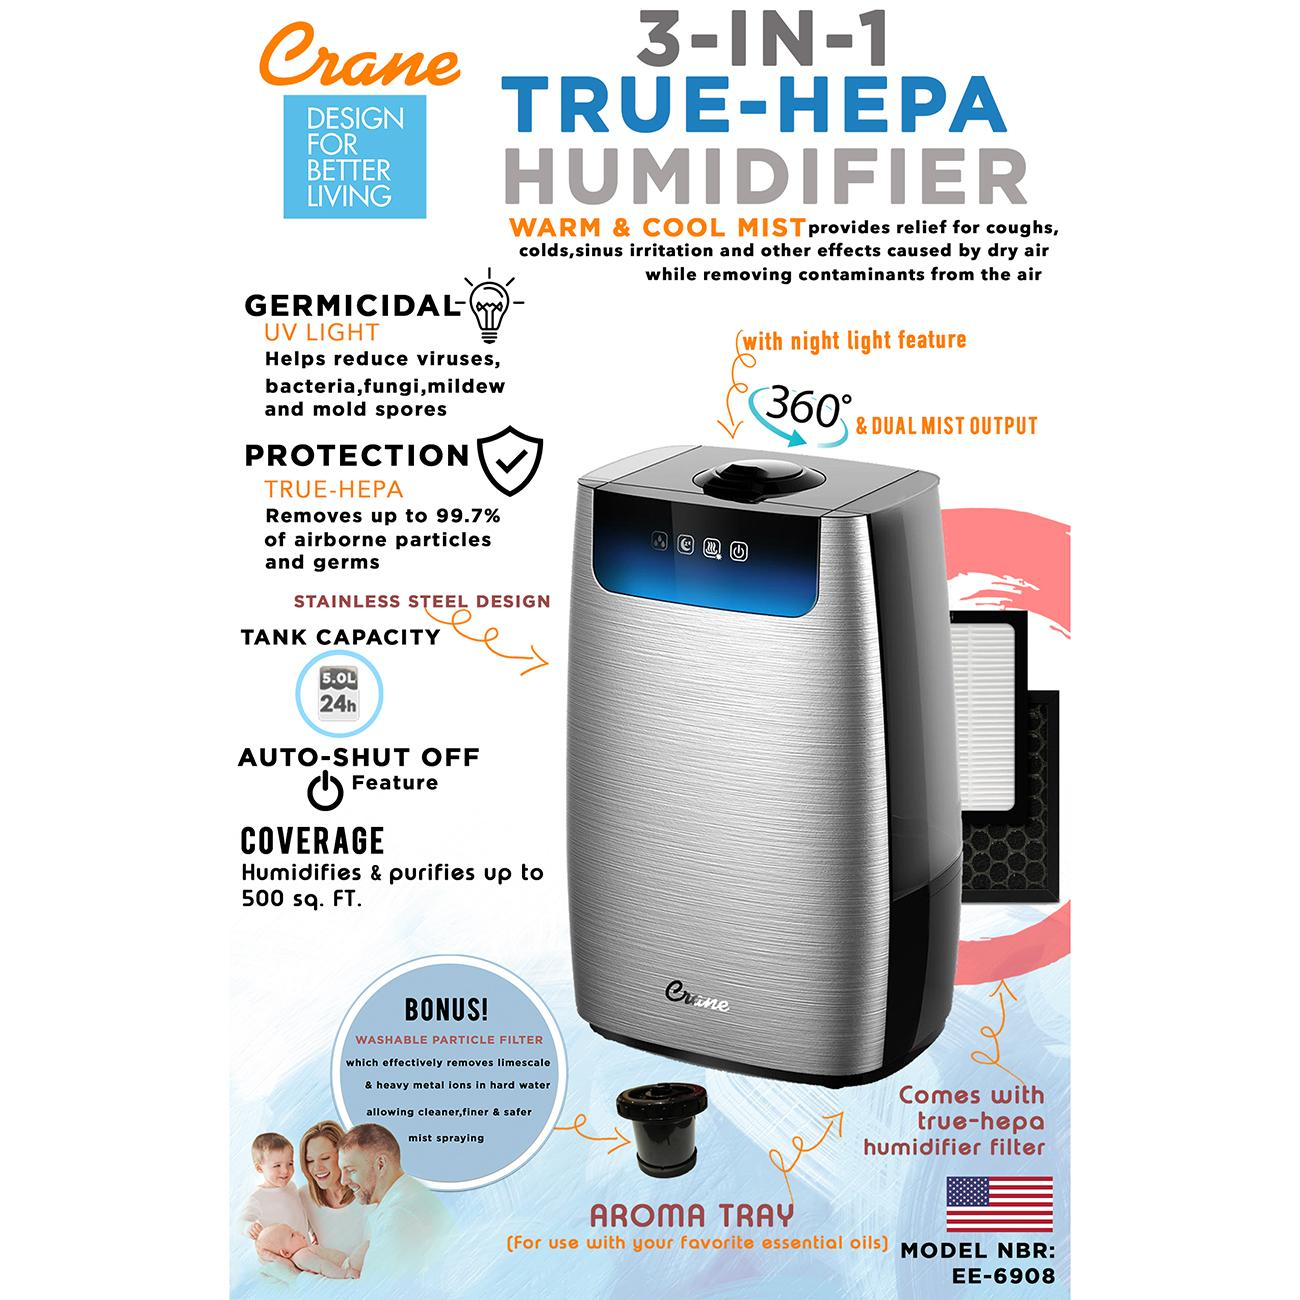 Crane Humidifier Philippines Air For Sale Automatic 3 In 1 True Hepa Warm Cool Mist